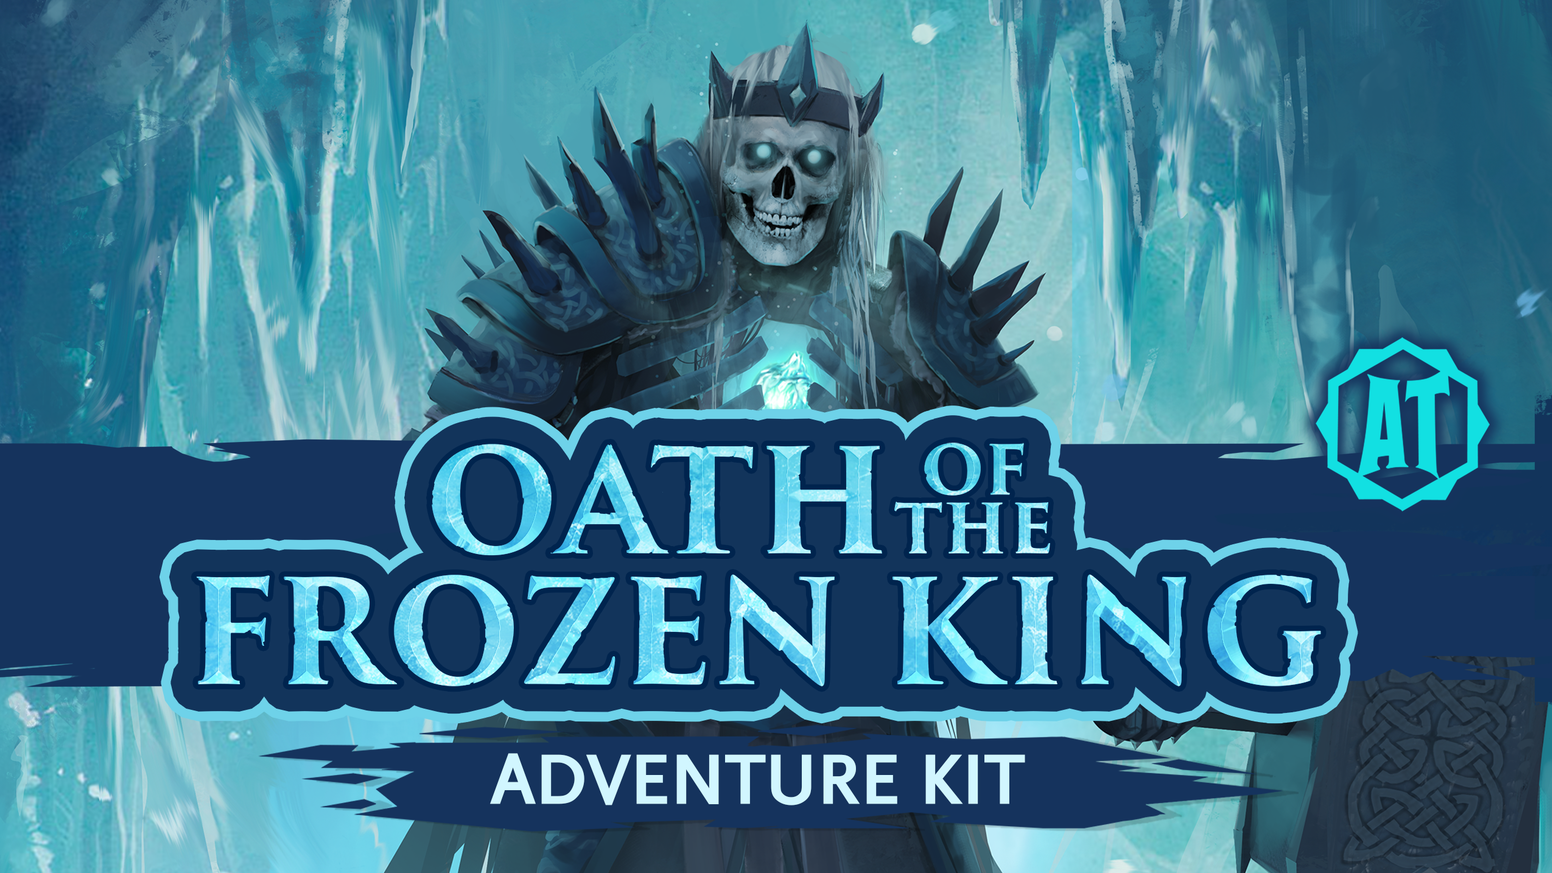 Somewhere between pre-written tabletop RPG adventure modules and your own simple prep notes, there's a sweet spot ... Adventure Kits.